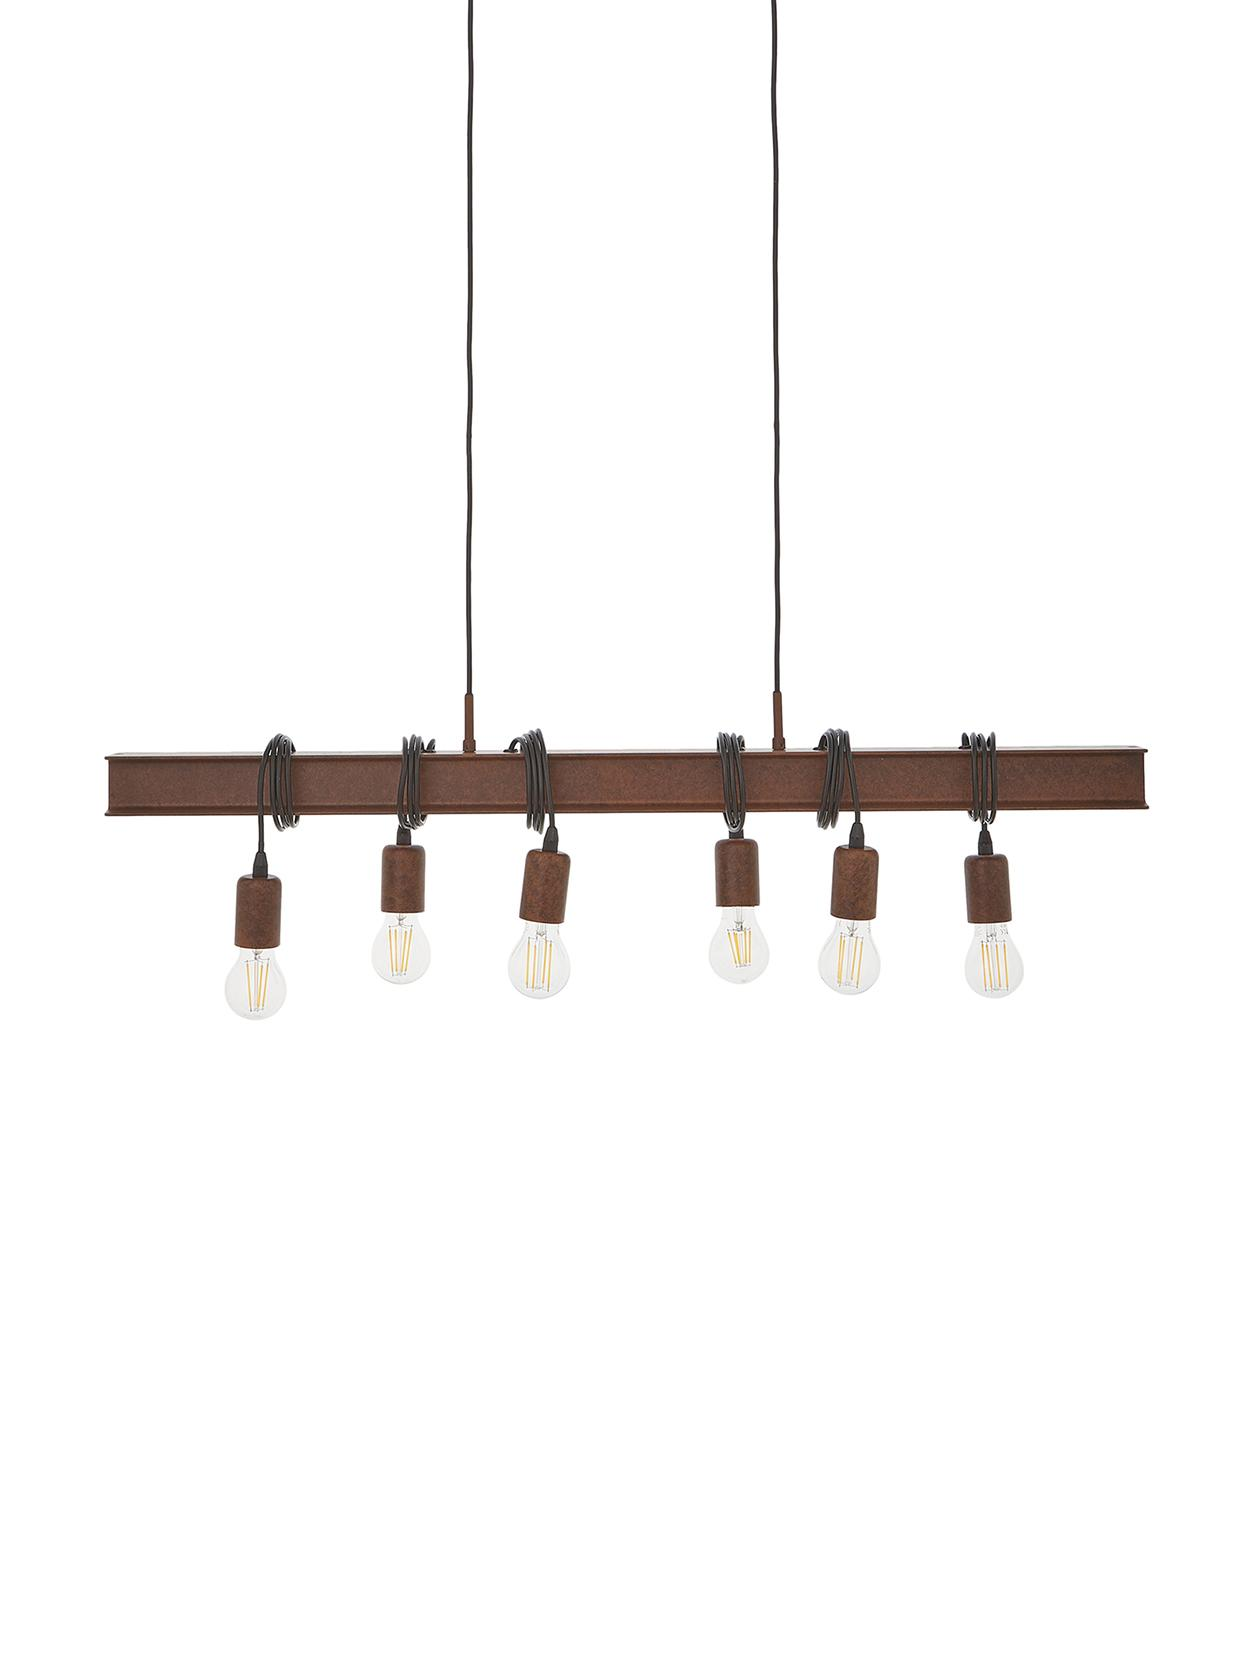 Grote hanglamp Townshend, Bruin, 101 x 22 cm